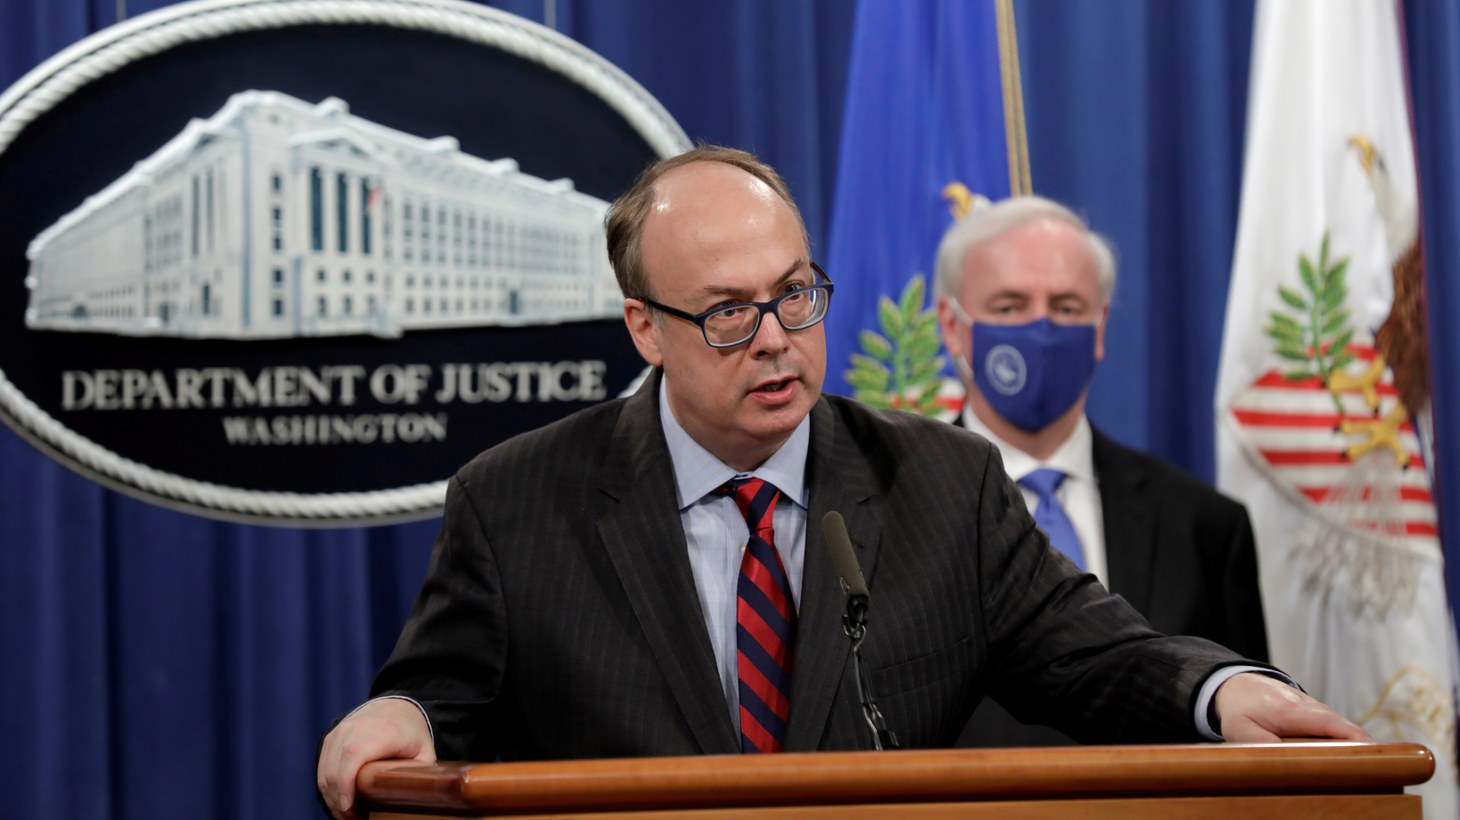 Acting Assistant U.S. Attorney General Jeffrey Clark speaks next to Deputy U.S. Attorney General Jeffrey Rosen at a news conference, where they announced that Purdue Pharma LP has agreed to plead guilty to criminal charges over the handling of its addictive prescription opioid OxyContin, at the Justice Department in Washington, U.S., October 21, 2020.